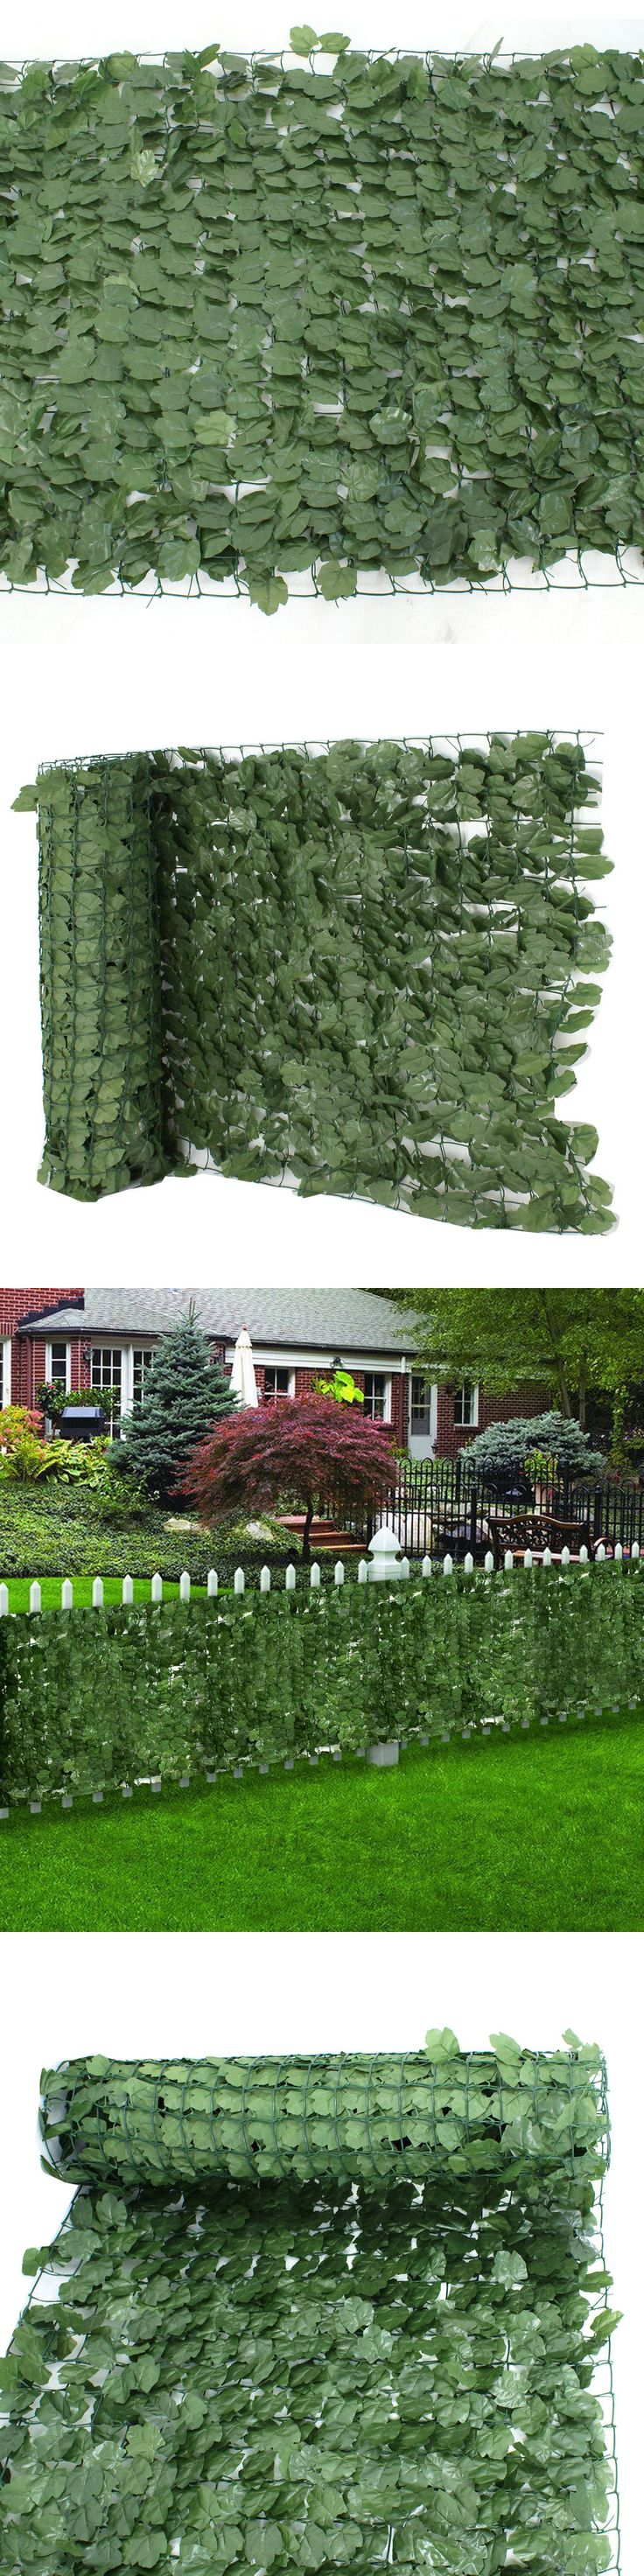 Privacy screen for chain link fence ebay - Fence Panels 139946 Faux Ivy Leaf Decorative Privacy Fence Screen 39 X 94 Artificial Hedge